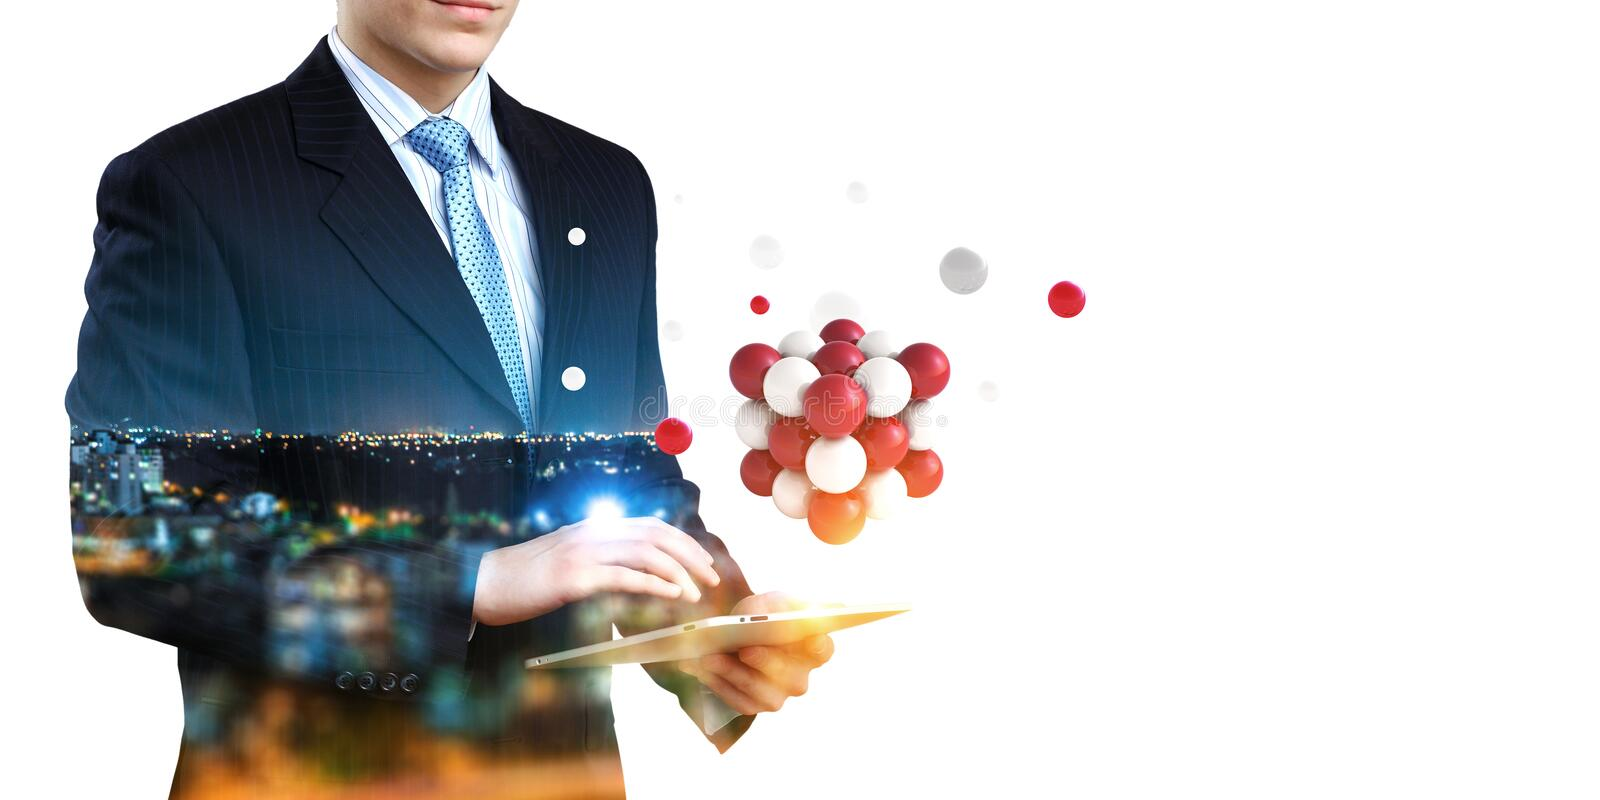 Businessman holding a tabalet with a bunch of spheres levitating above. Mixed media stock photo